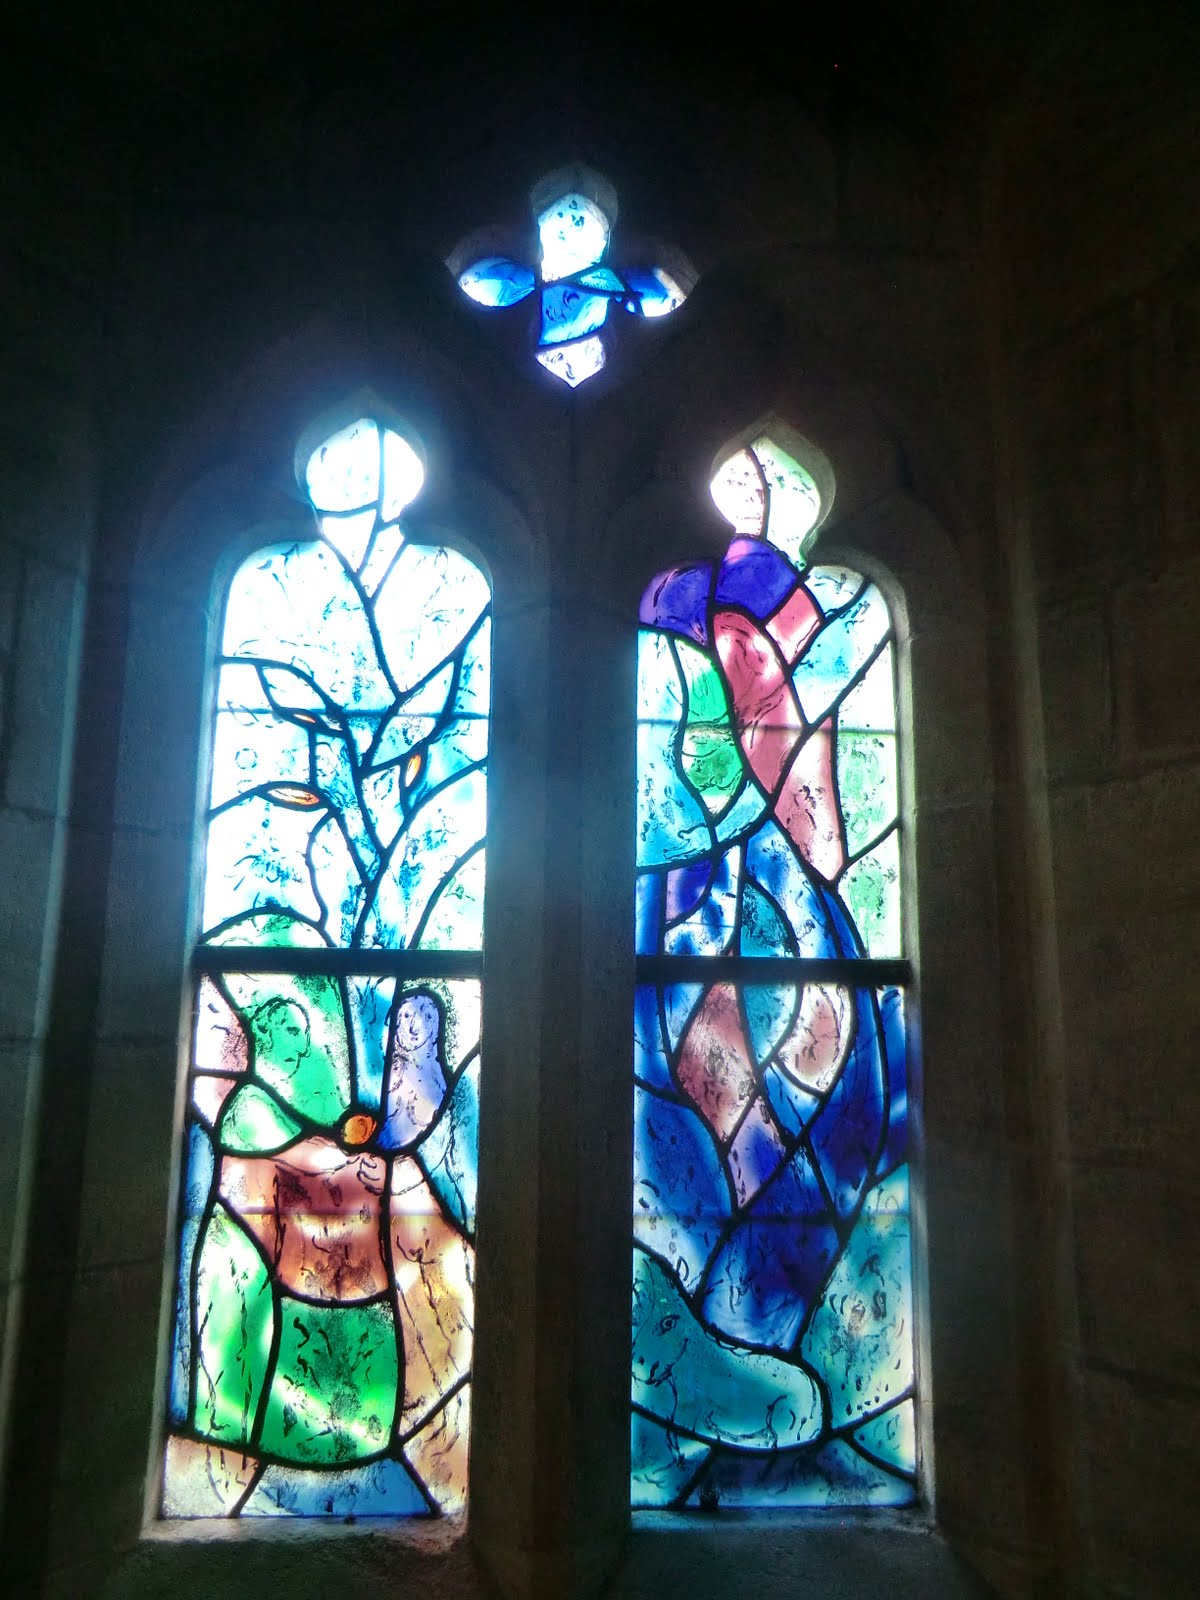 CIMG1559 Chagall window #1, All Saints church